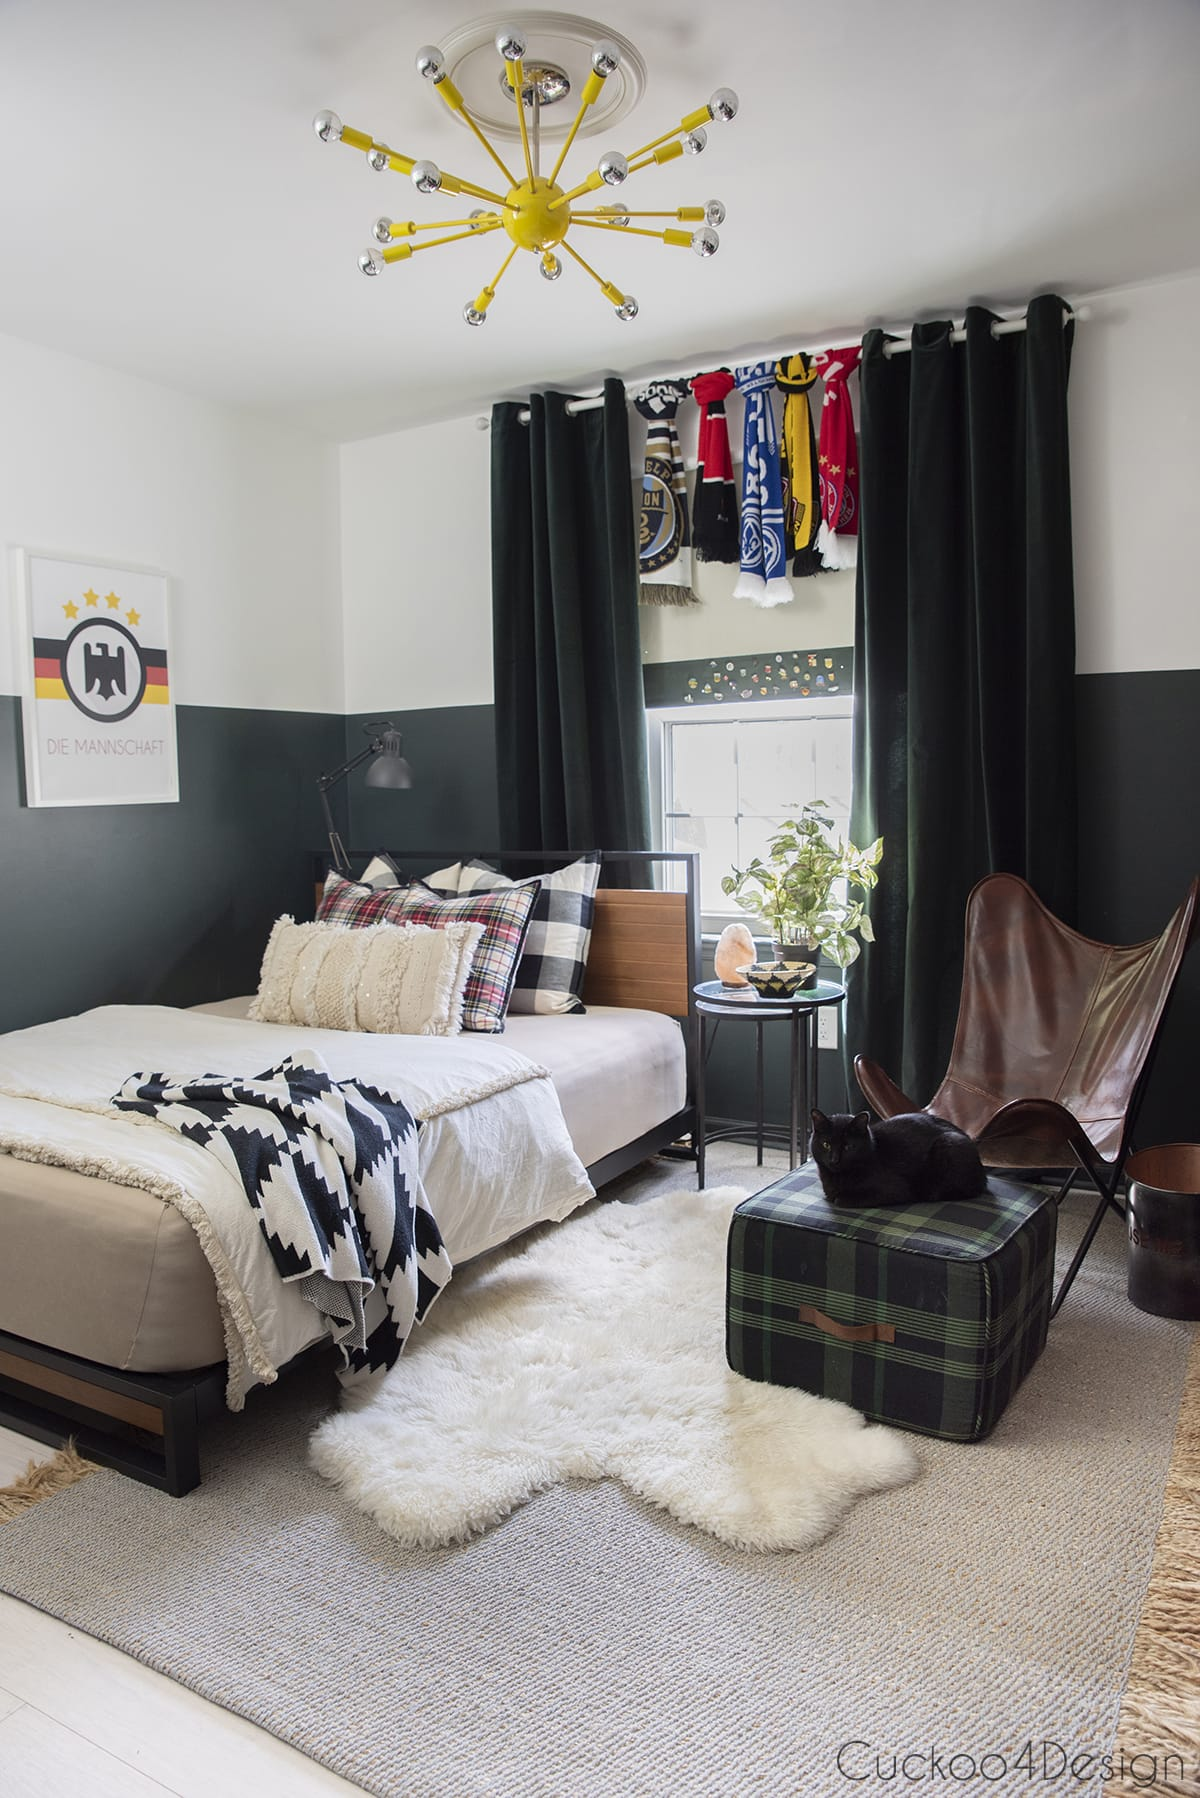 dark green boys bedroom with soccer scarf collection on curtain rod